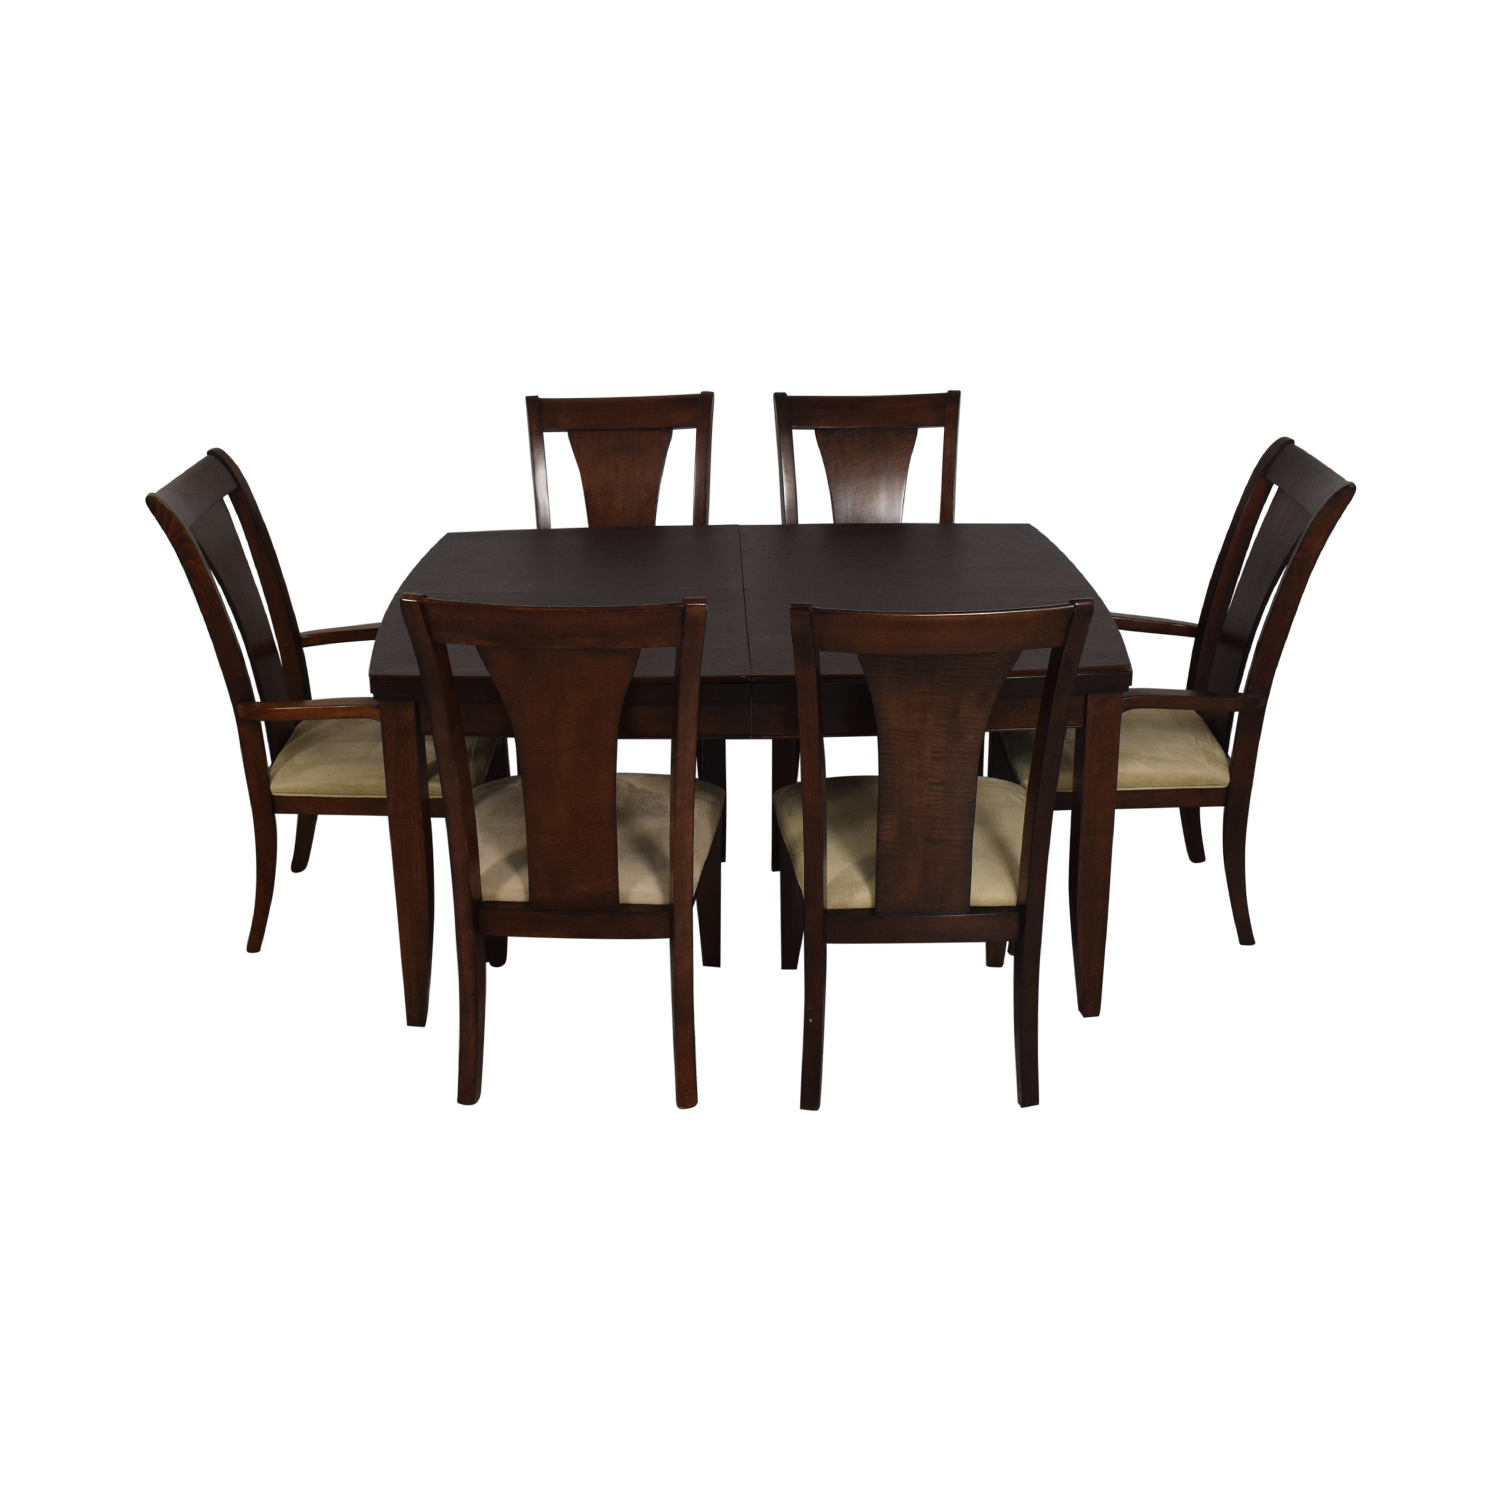 Macy's Macy's Wood Extentable Dining Set dimensions